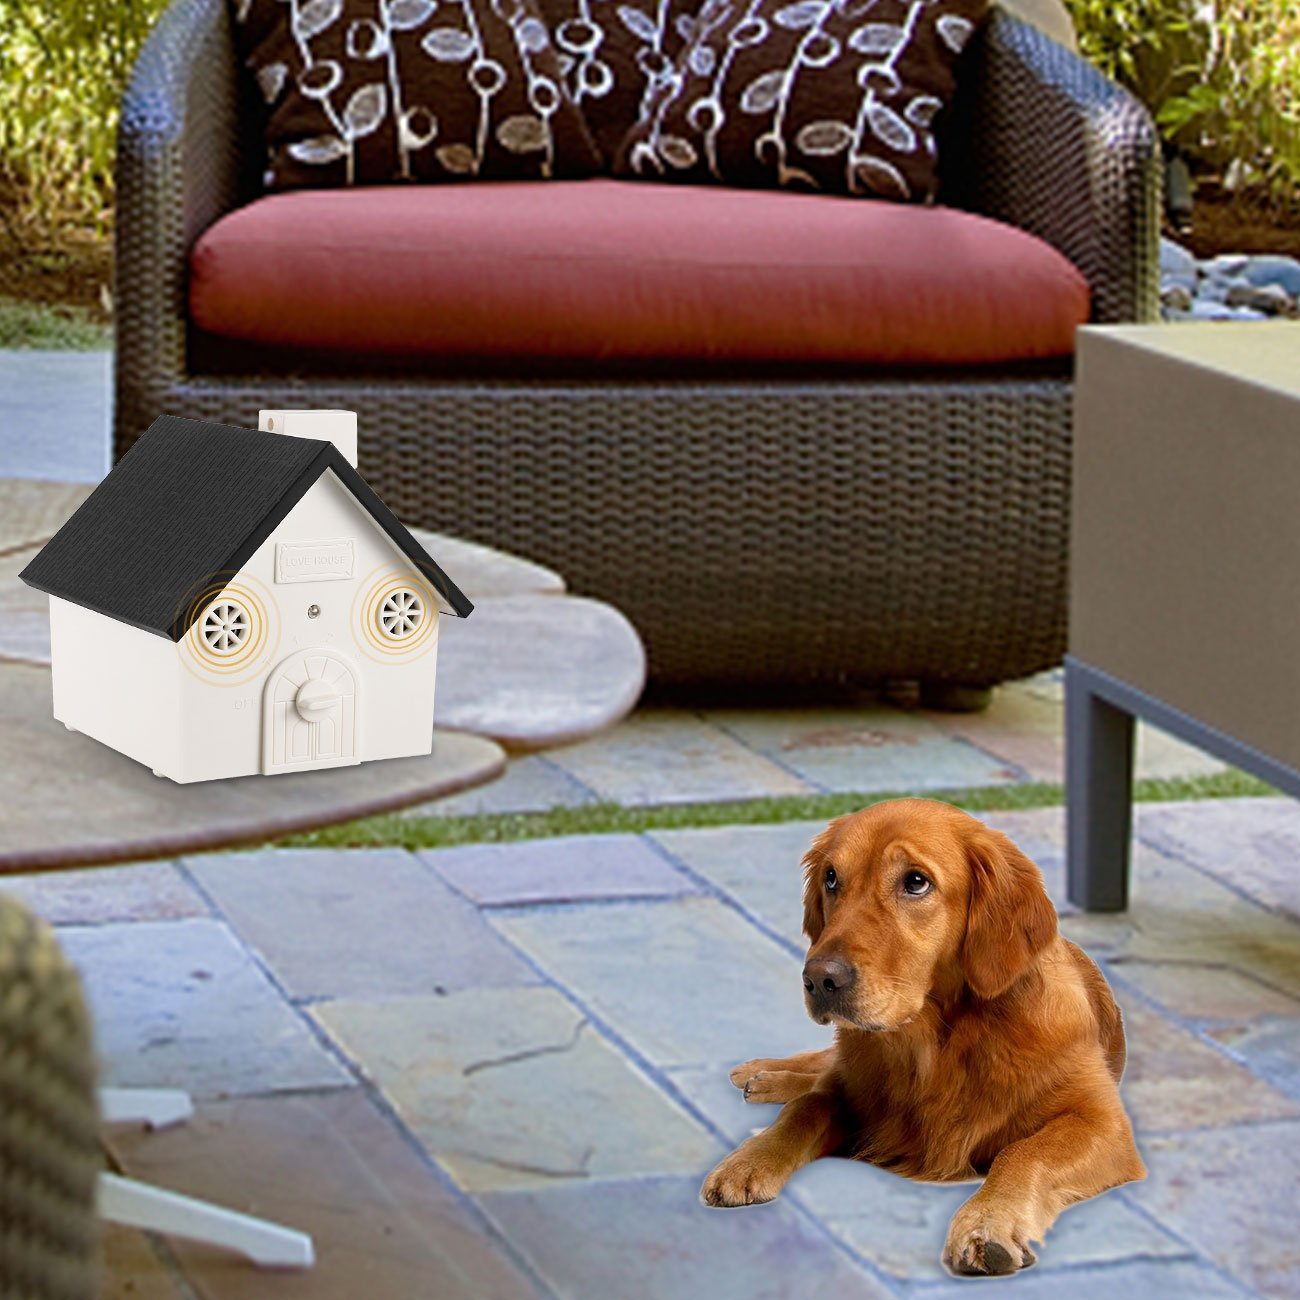 Sonic Bark Deterrents Bark Control Device 2019 New Bark Box Outdoor Dog Repellent Device with Adjustable Ultrasonic Level Control Safe for Dogs ELenest Anti Barking Device